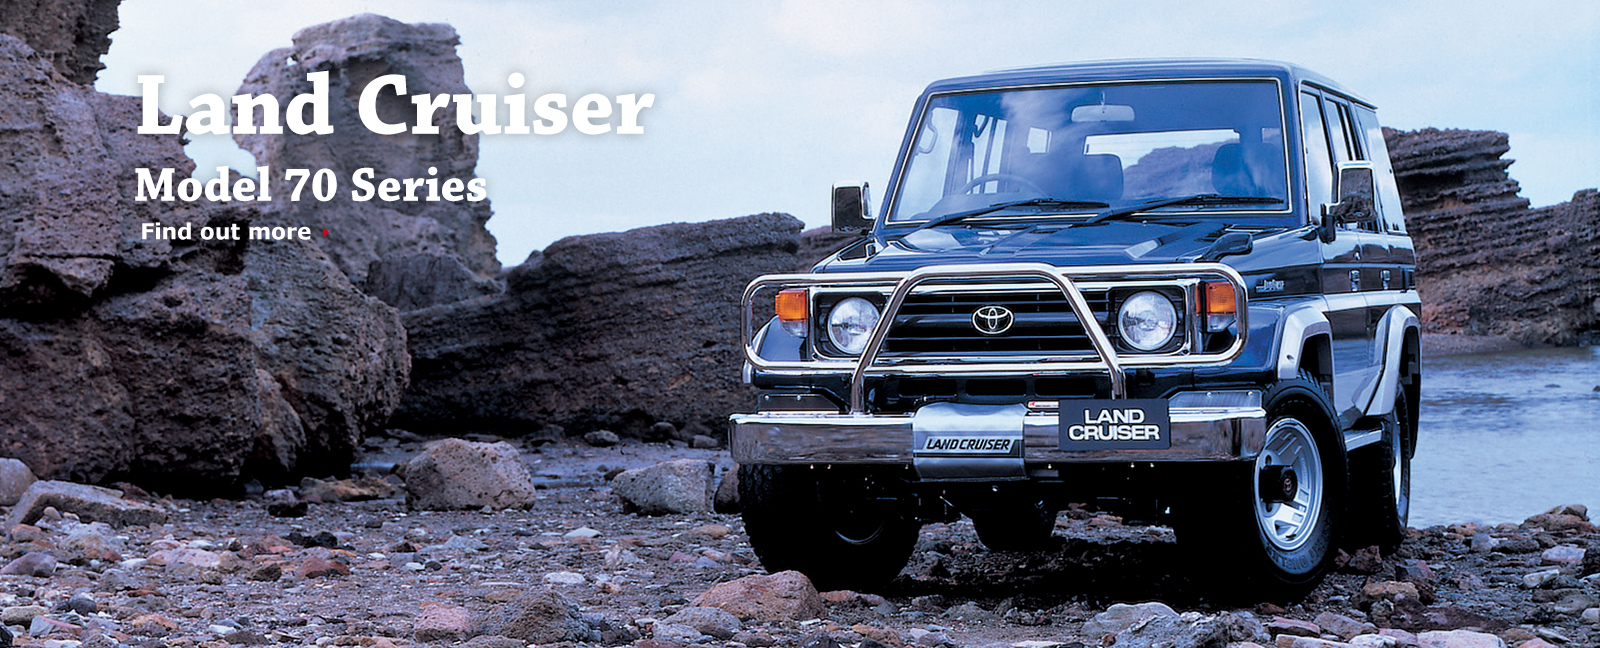 Land Cruiser Model 70 Series Find out more